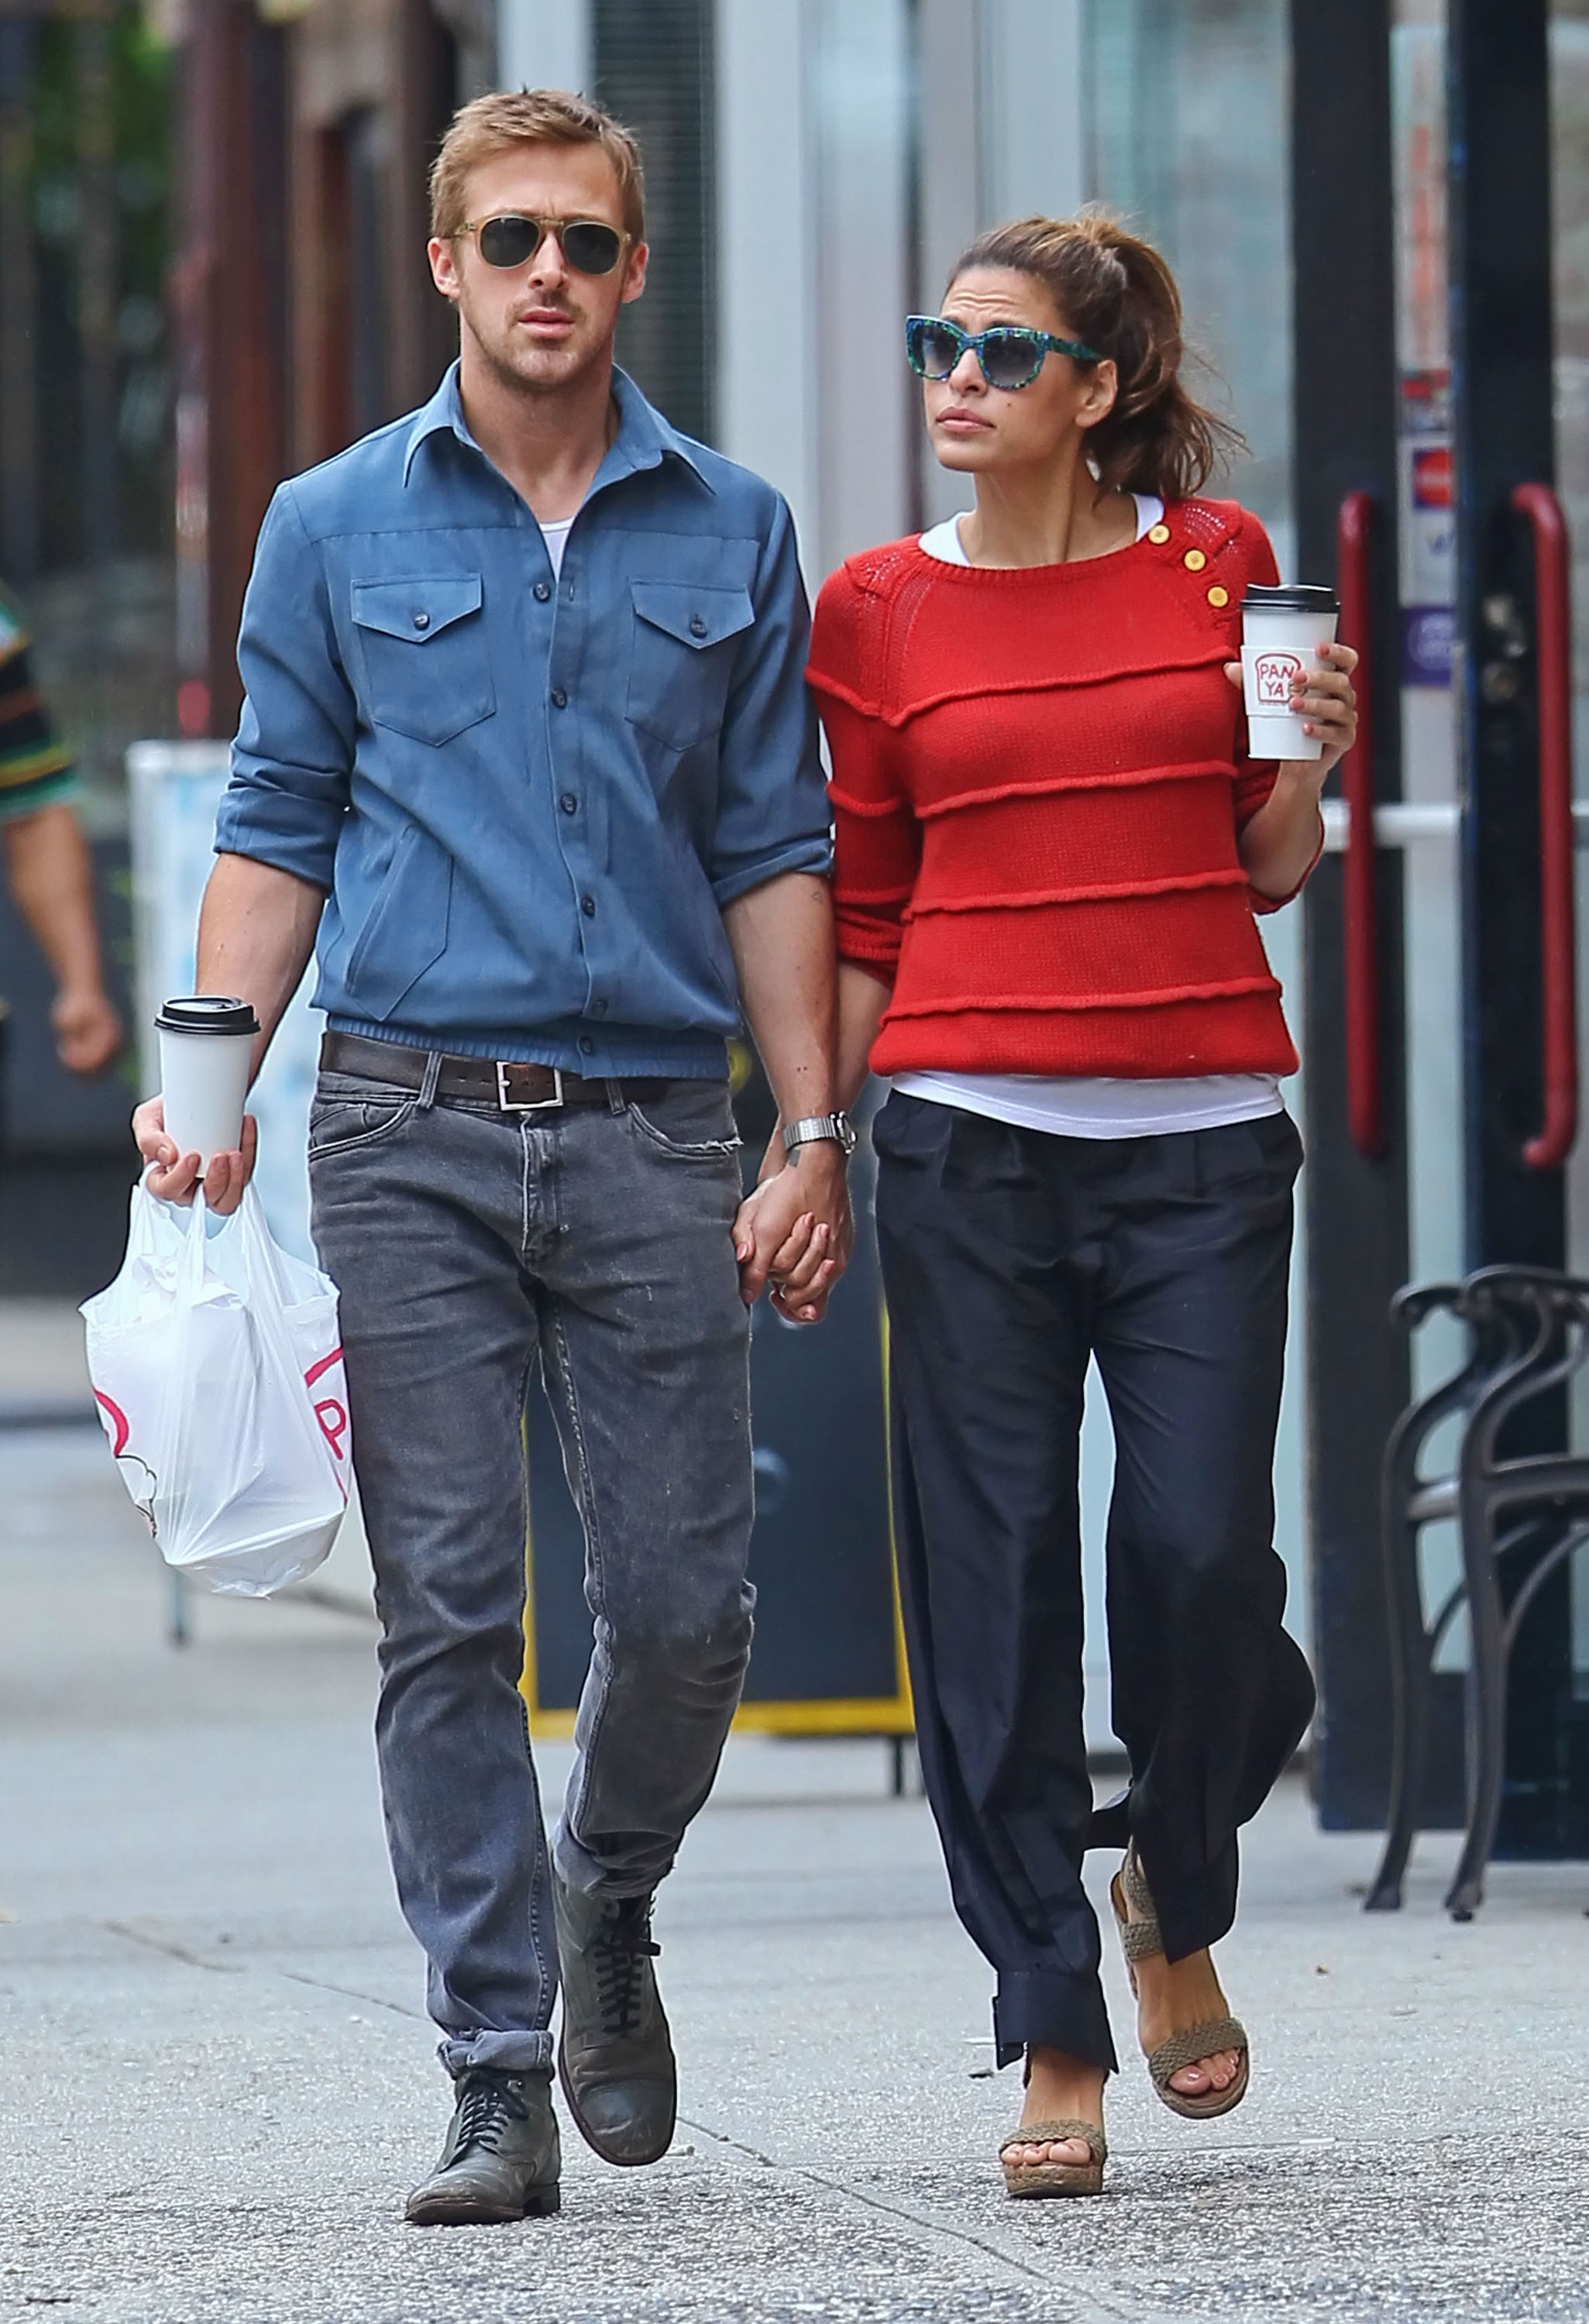 9070153 Couple Ryan Gosling and Eva Mendes hold hands after grabbing lunch in New York City, New York on May 10, 2012. FameFlynet, Inc. - Santa Monica, CA, USA - +1 (818) 307-4813